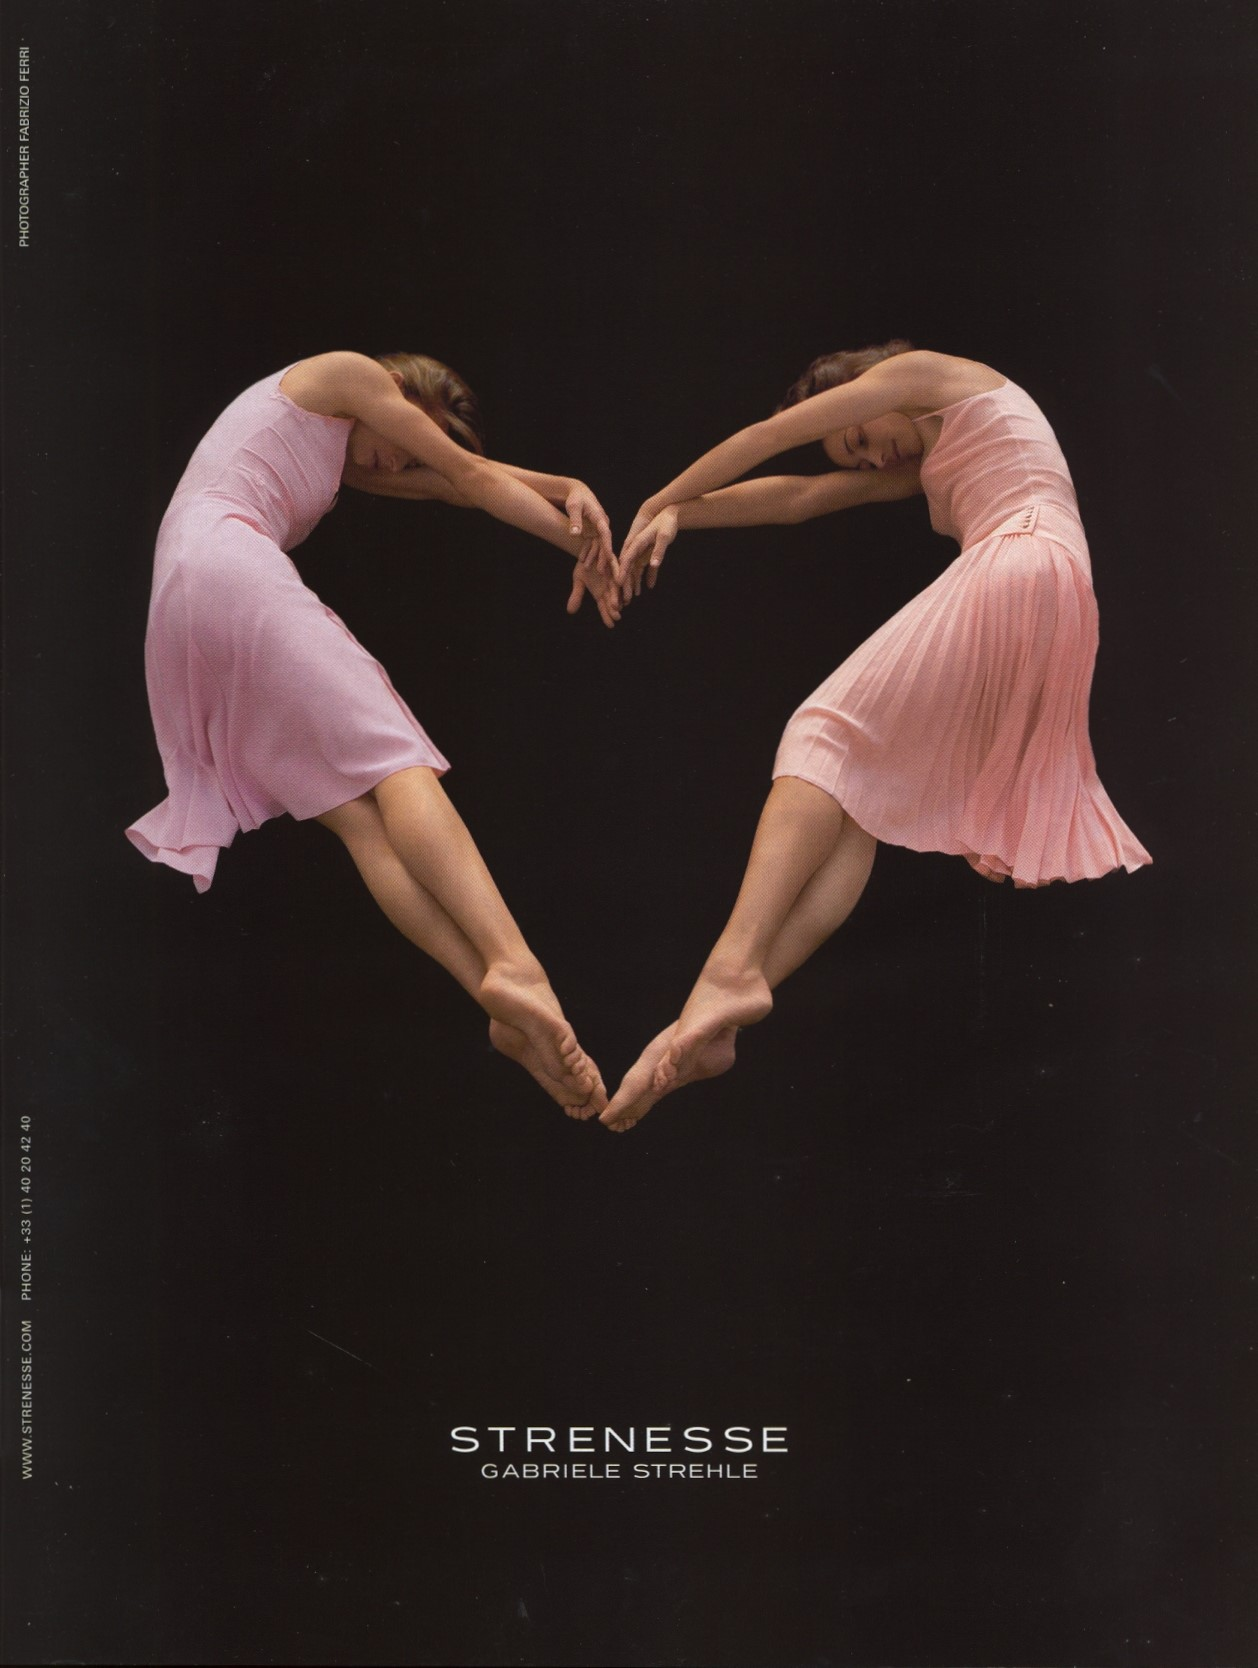 strenesse by gabriele strehle ad campaign photography fabrizio ferri vogue paris n855 march 2005